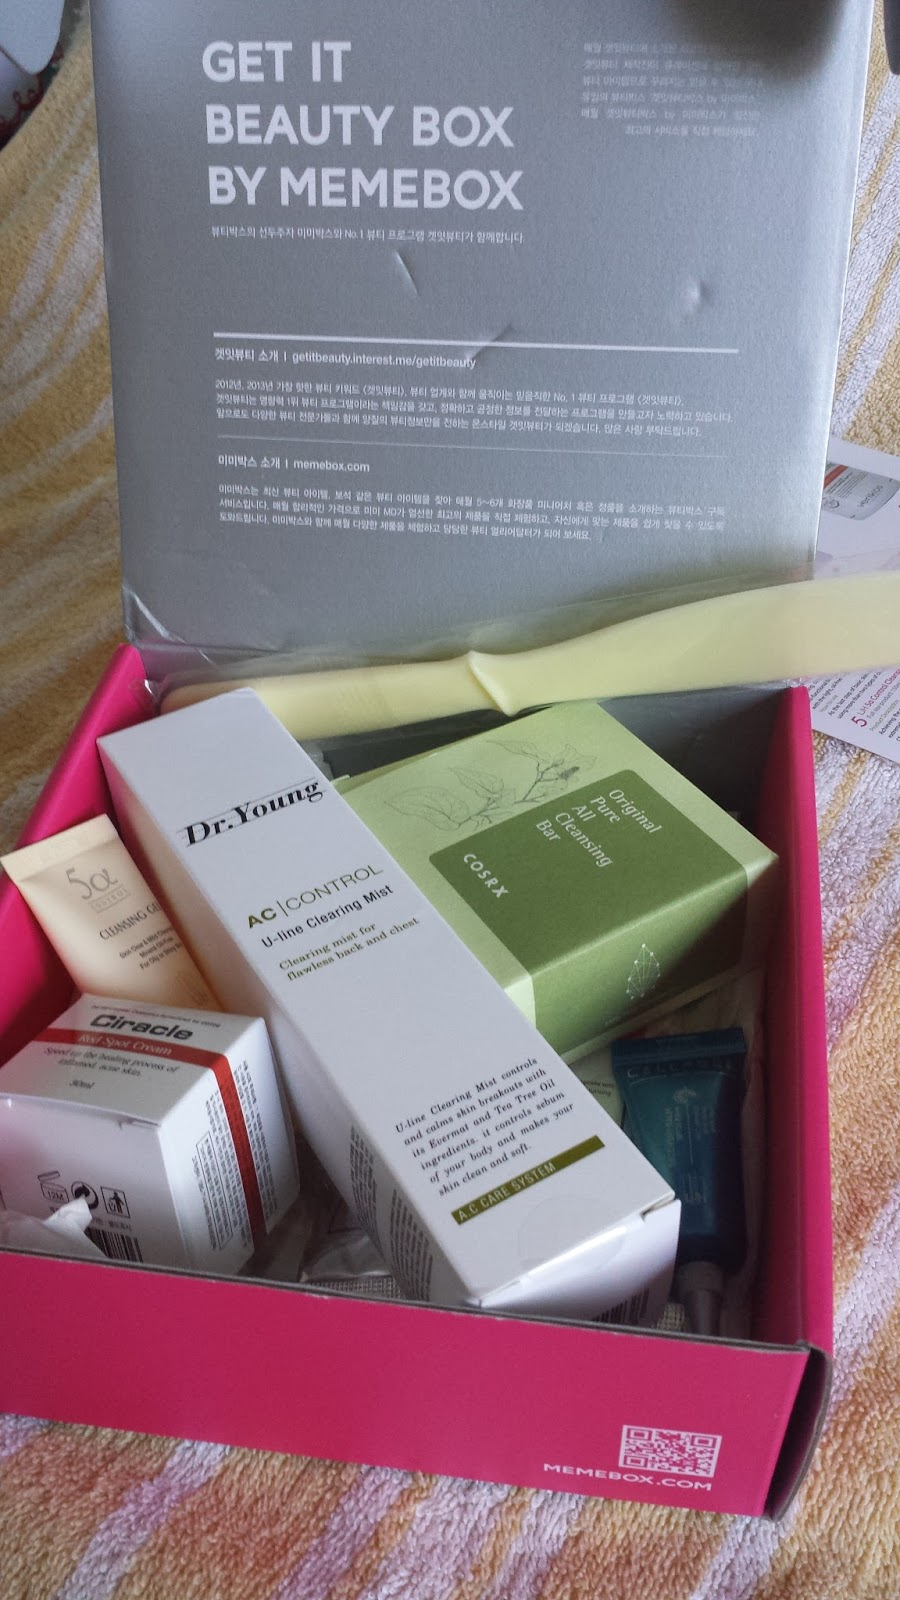 Unboxing Free From Oil & Troubles Memebox